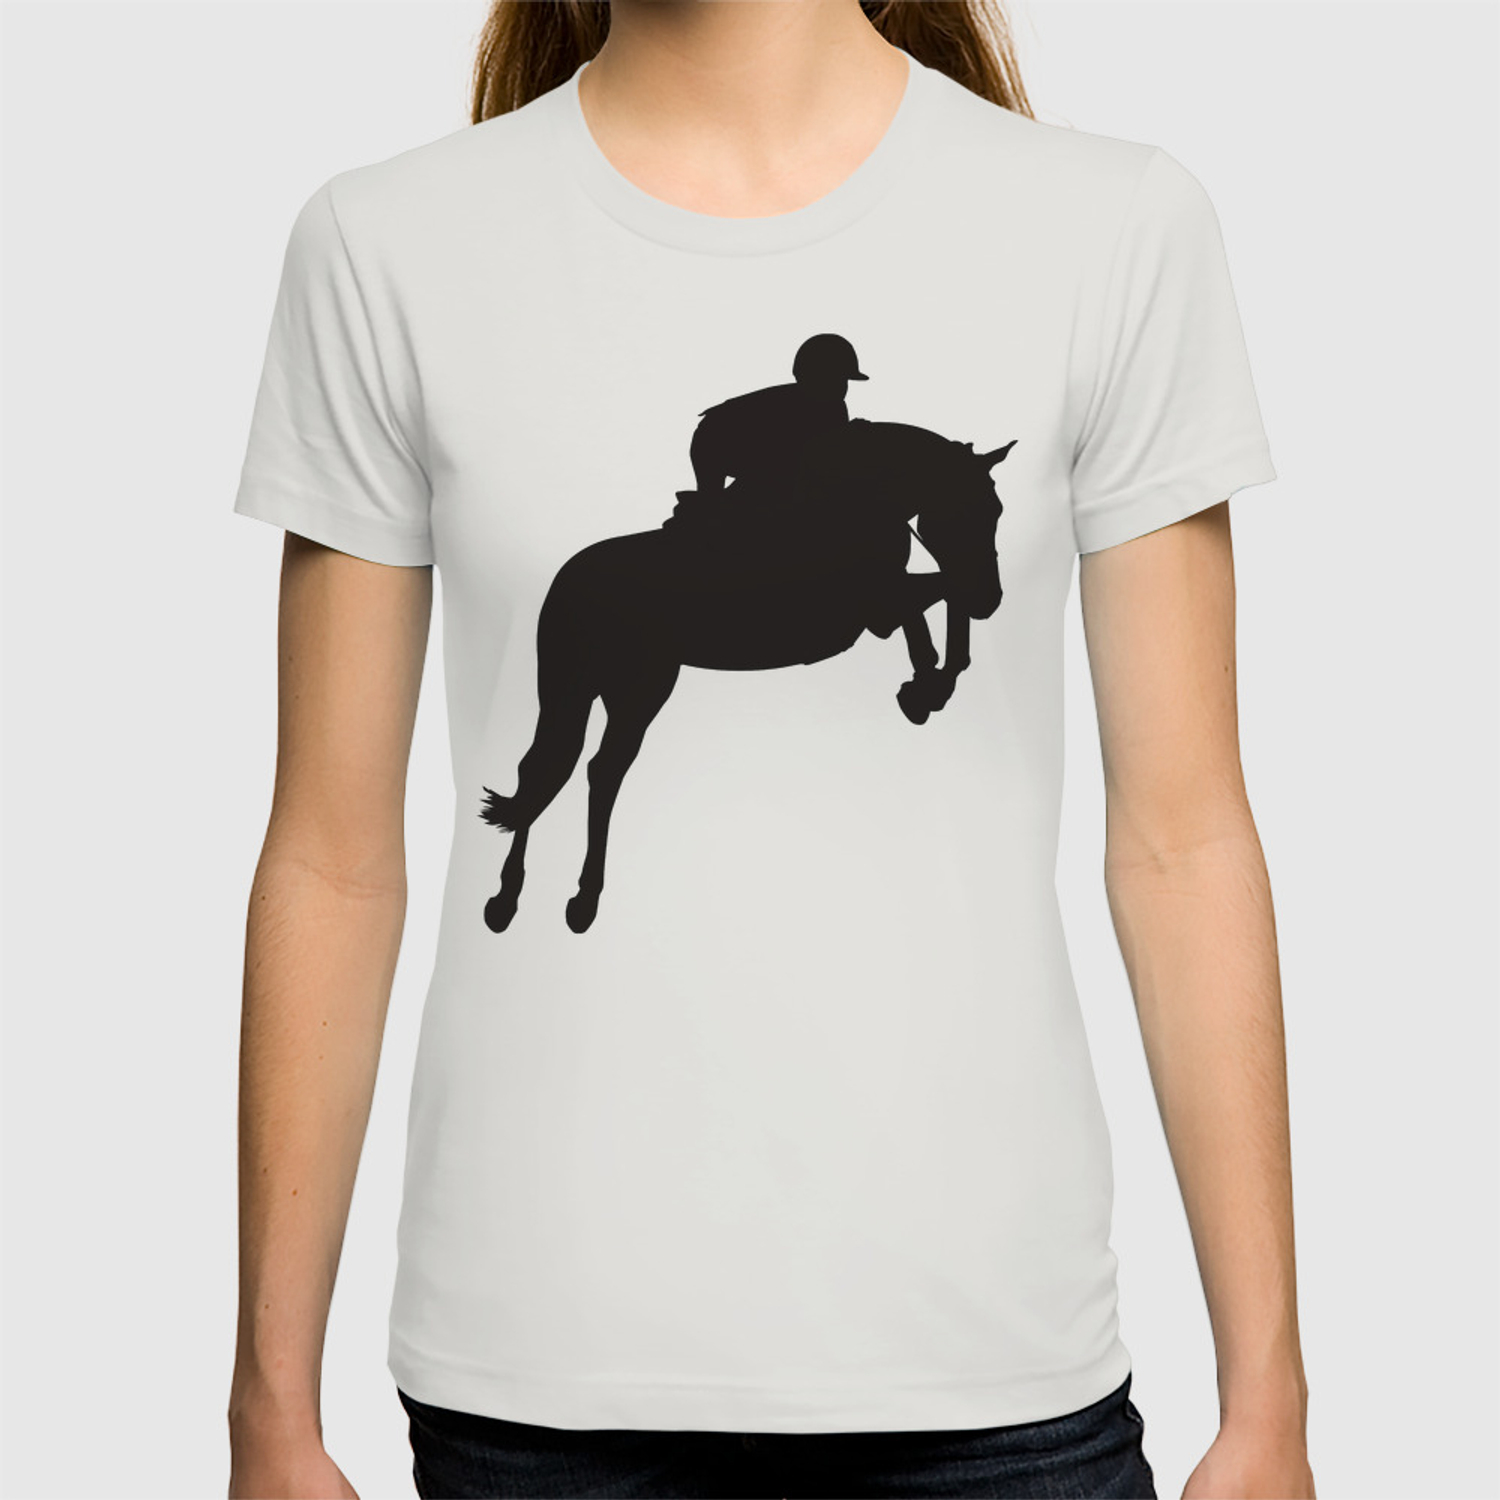 Jumping Horse Silhouette T Shirt By A Slice Society6